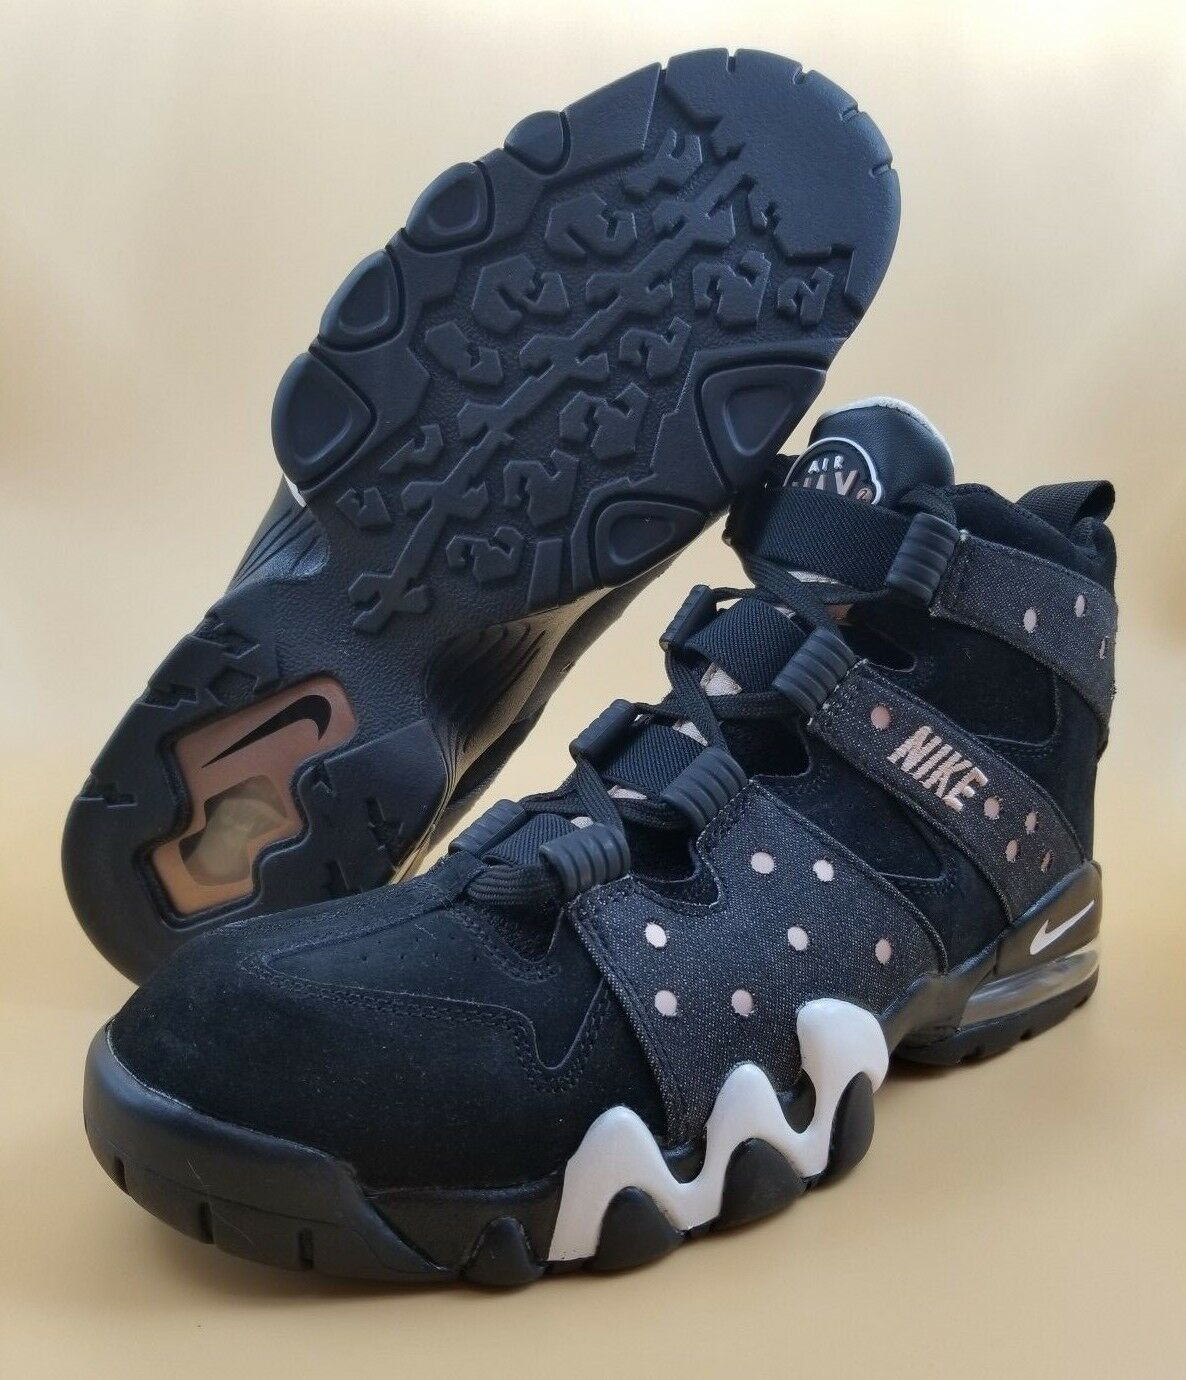 Nike Air Max 2 CB 94 Charles Barkley 305440-004 Black SIZE 11.5 13 Men shoes